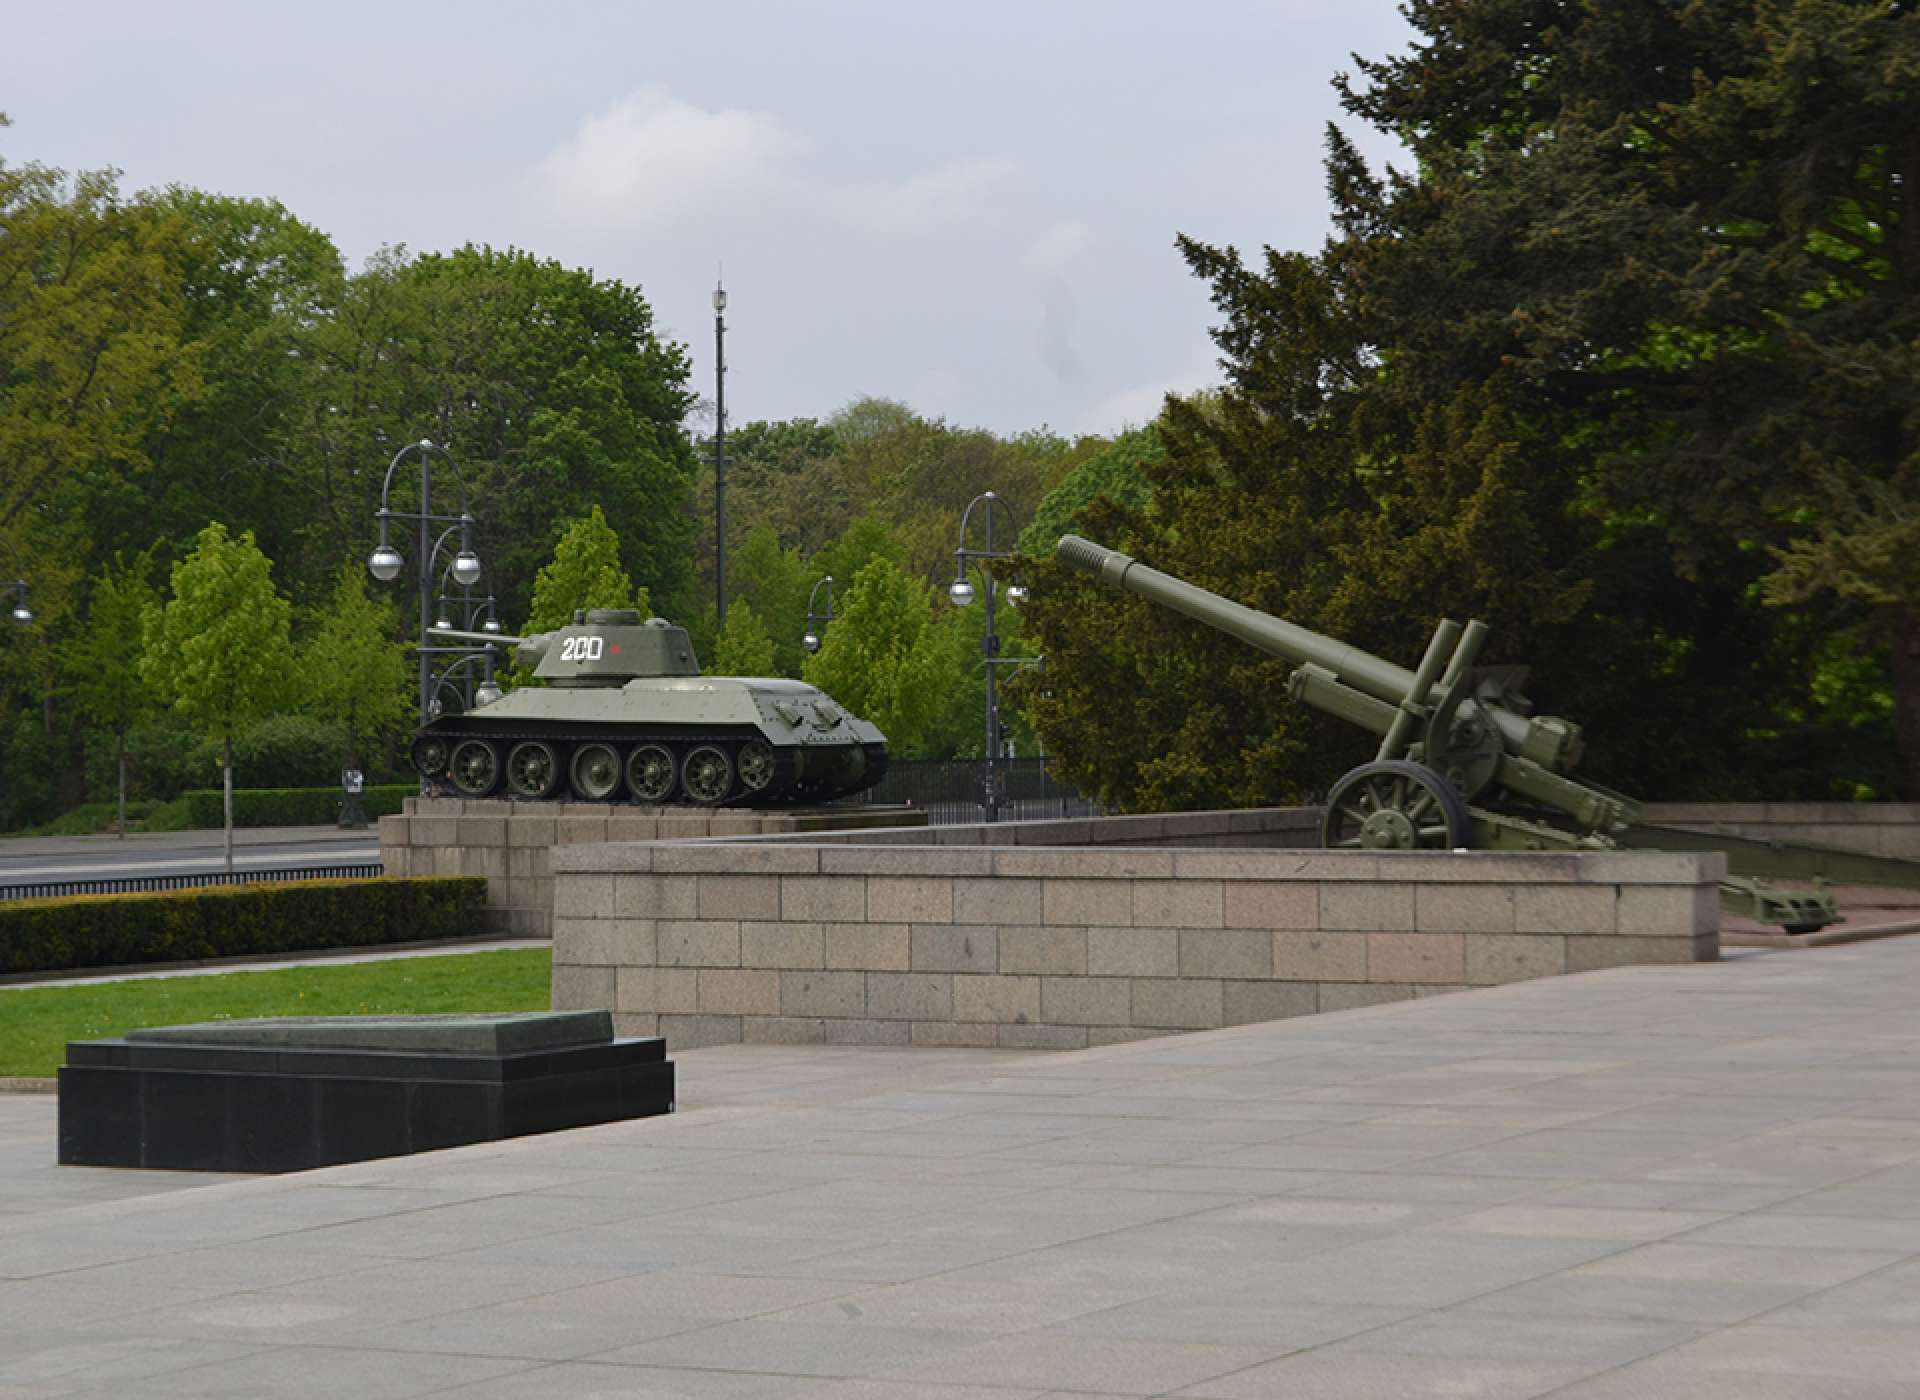 Soviet T-34 tank and ML 20 howitzer gun in the Tiergarten, Berlin Courtesy Keith Huxen, PhD